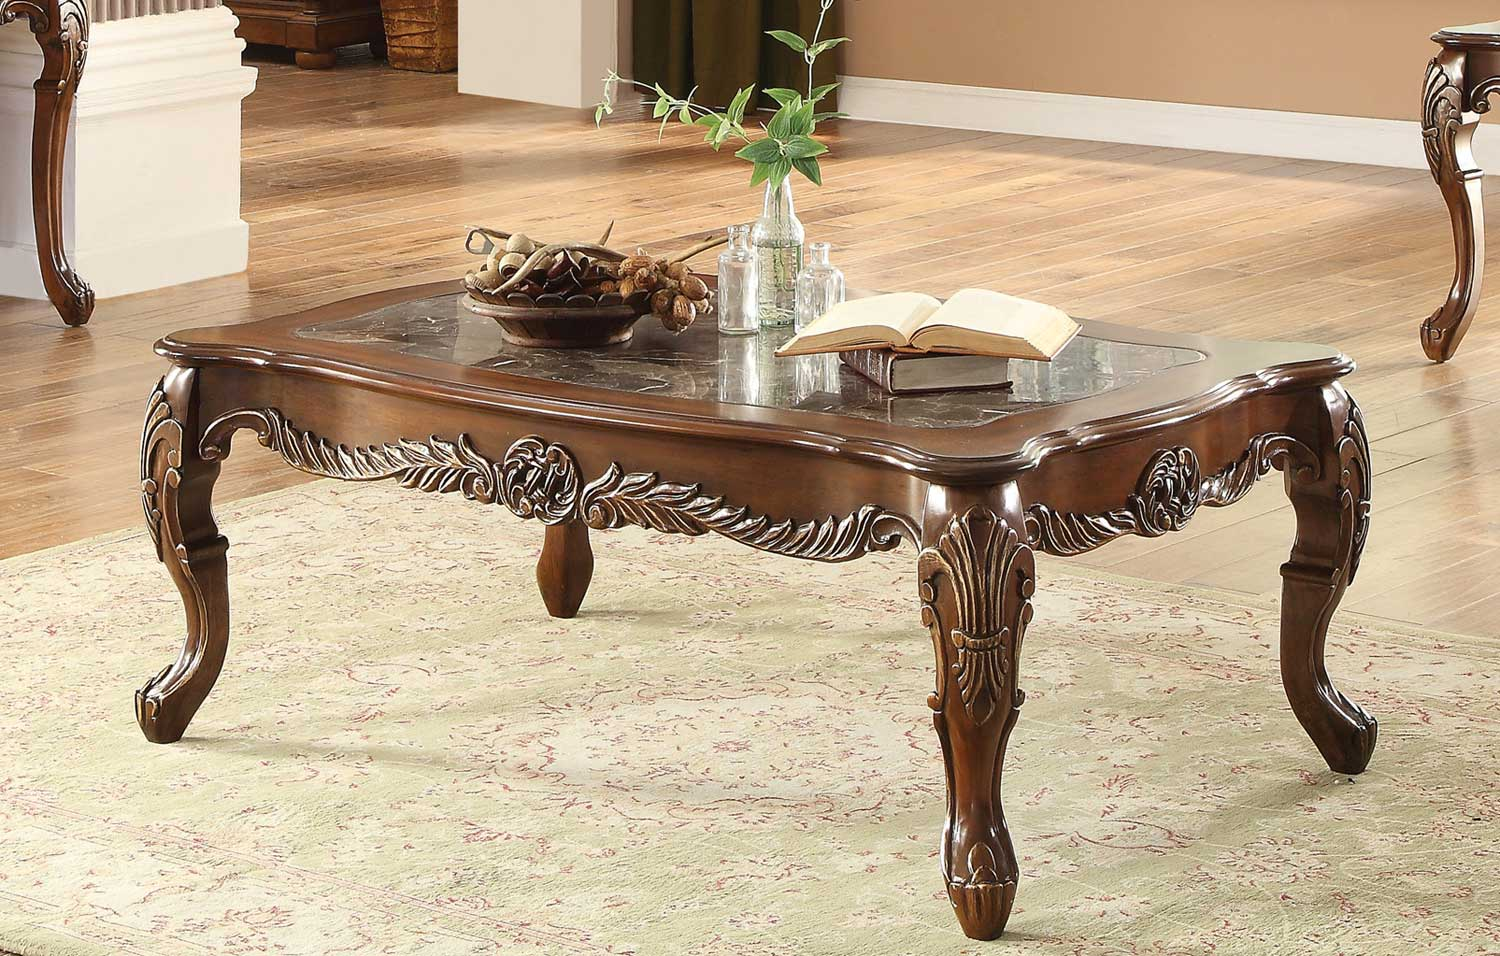 Homelegance Logan Cocktail Table with Marble Inset - Warm Cherry